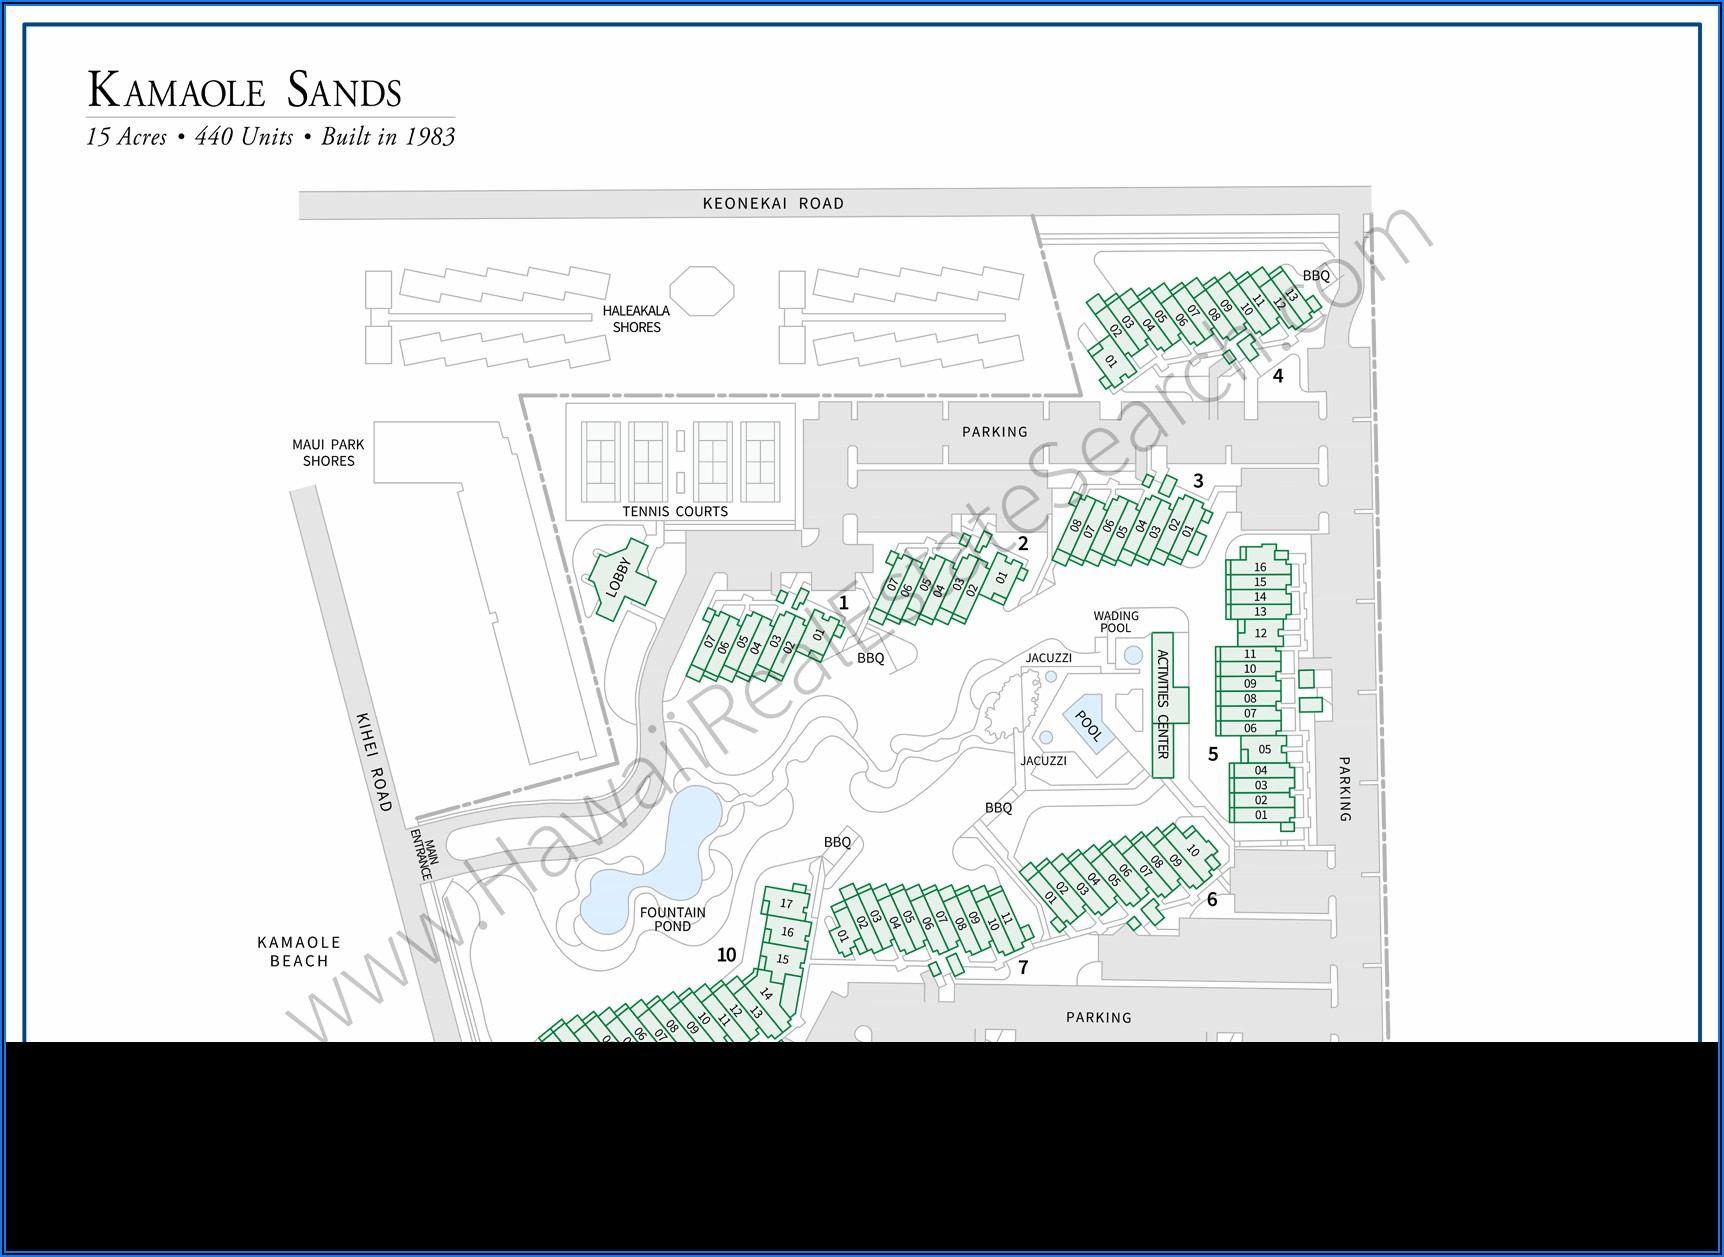 Maui Kamaole Sands Site Map